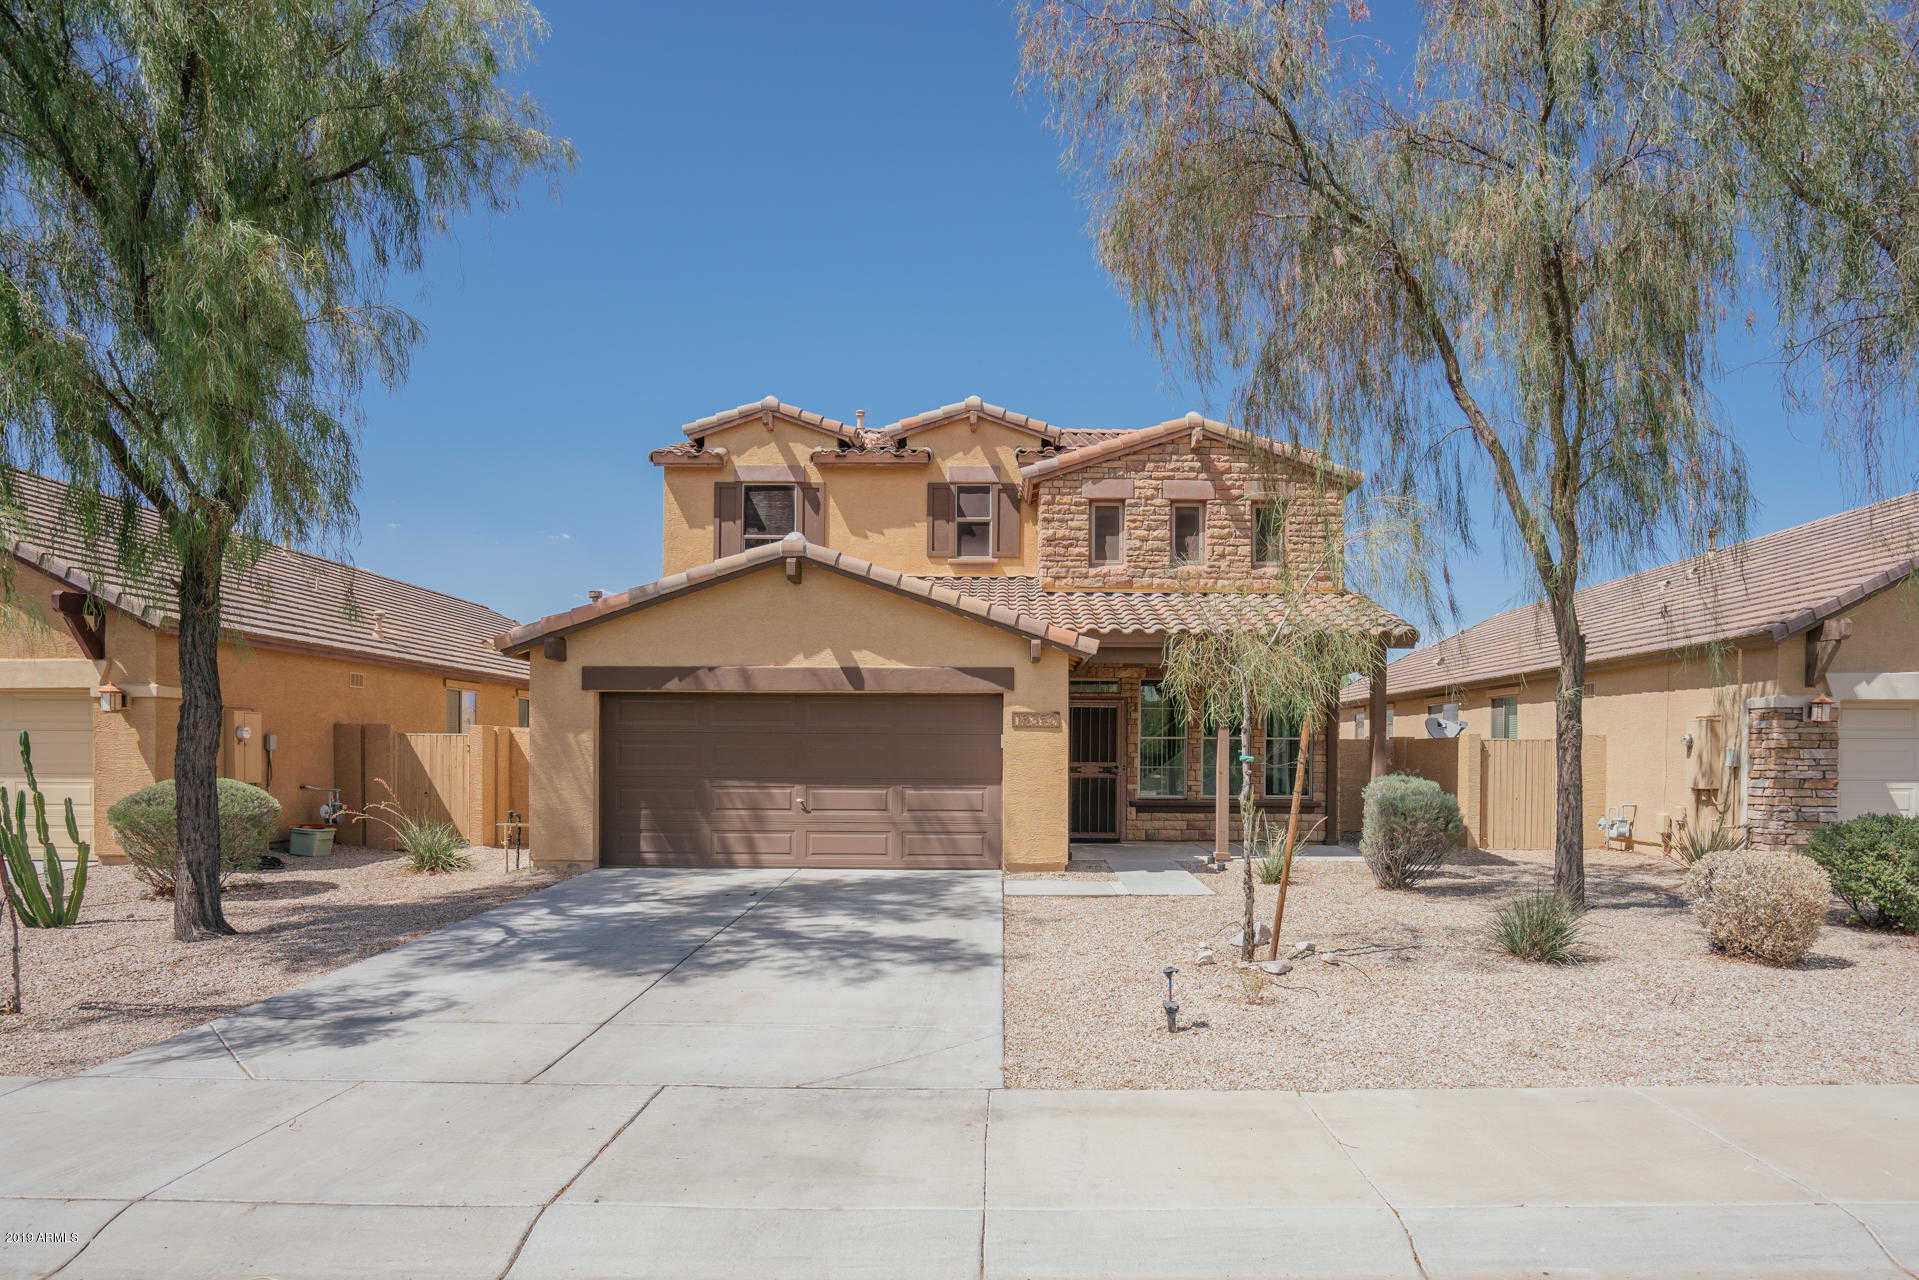 $295,000 - 4Br/3Ba - Home for Sale in Estrella Mountain Ranch Parcel 70, Goodyear